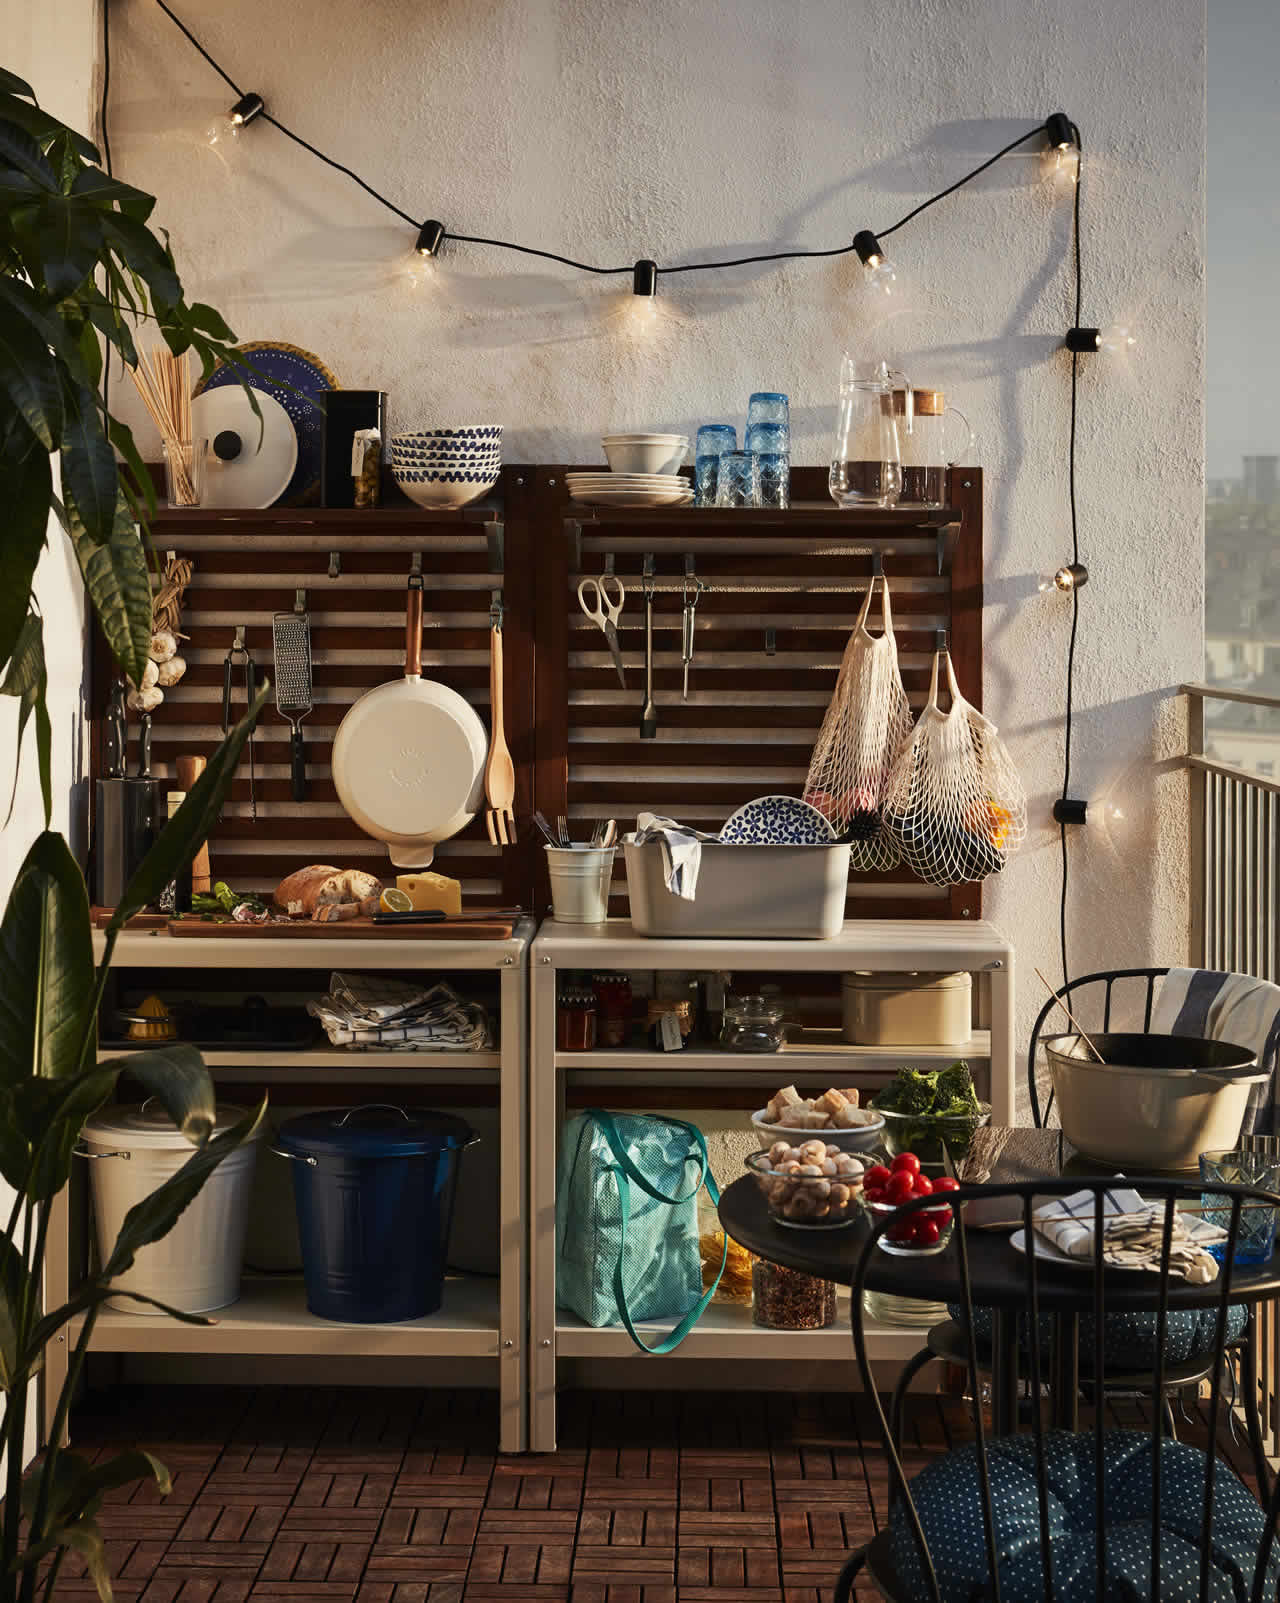 IKEA Ideas - Living slow on the balcony